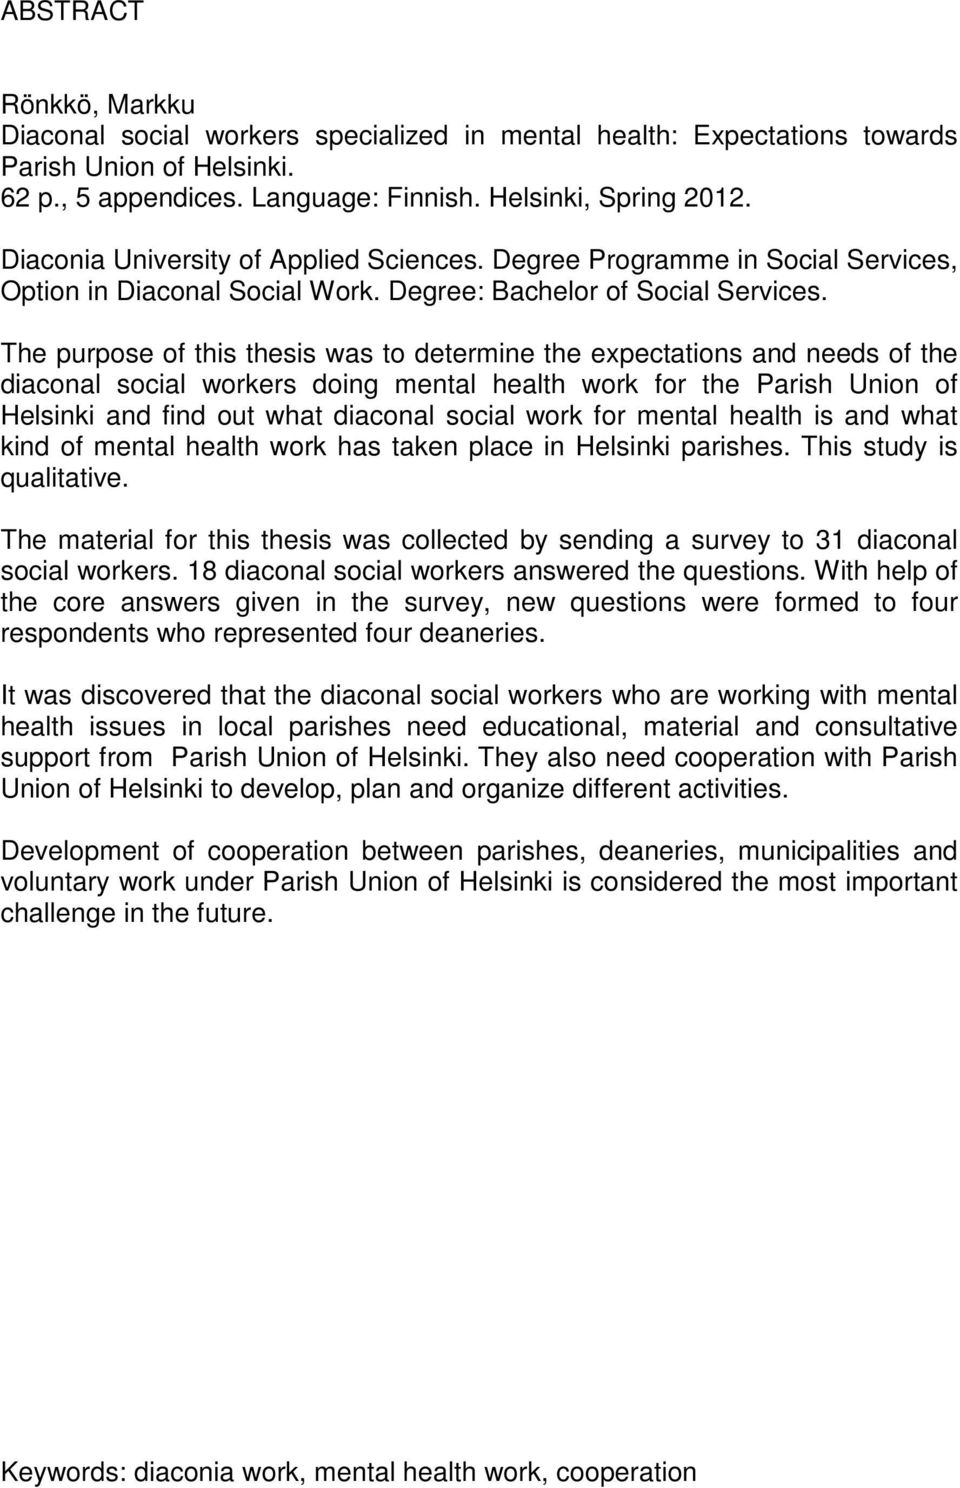 The purpose of this thesis was to determine the expectations and needs of the diaconal social workers doing mental health work for the Parish Union of Helsinki and find out what diaconal social work